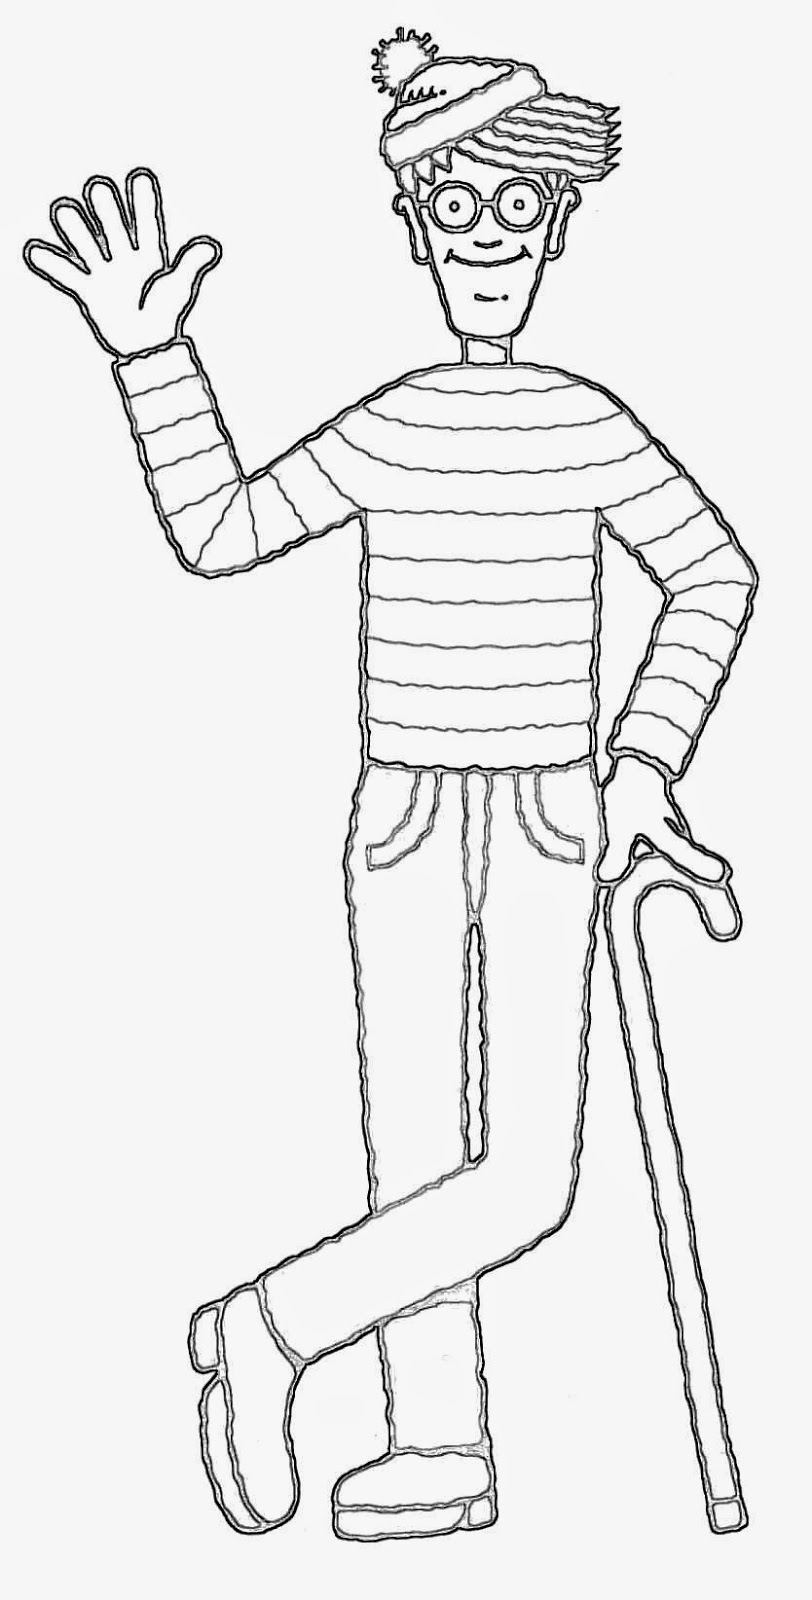 wheres waldo coloring pages - photo#18